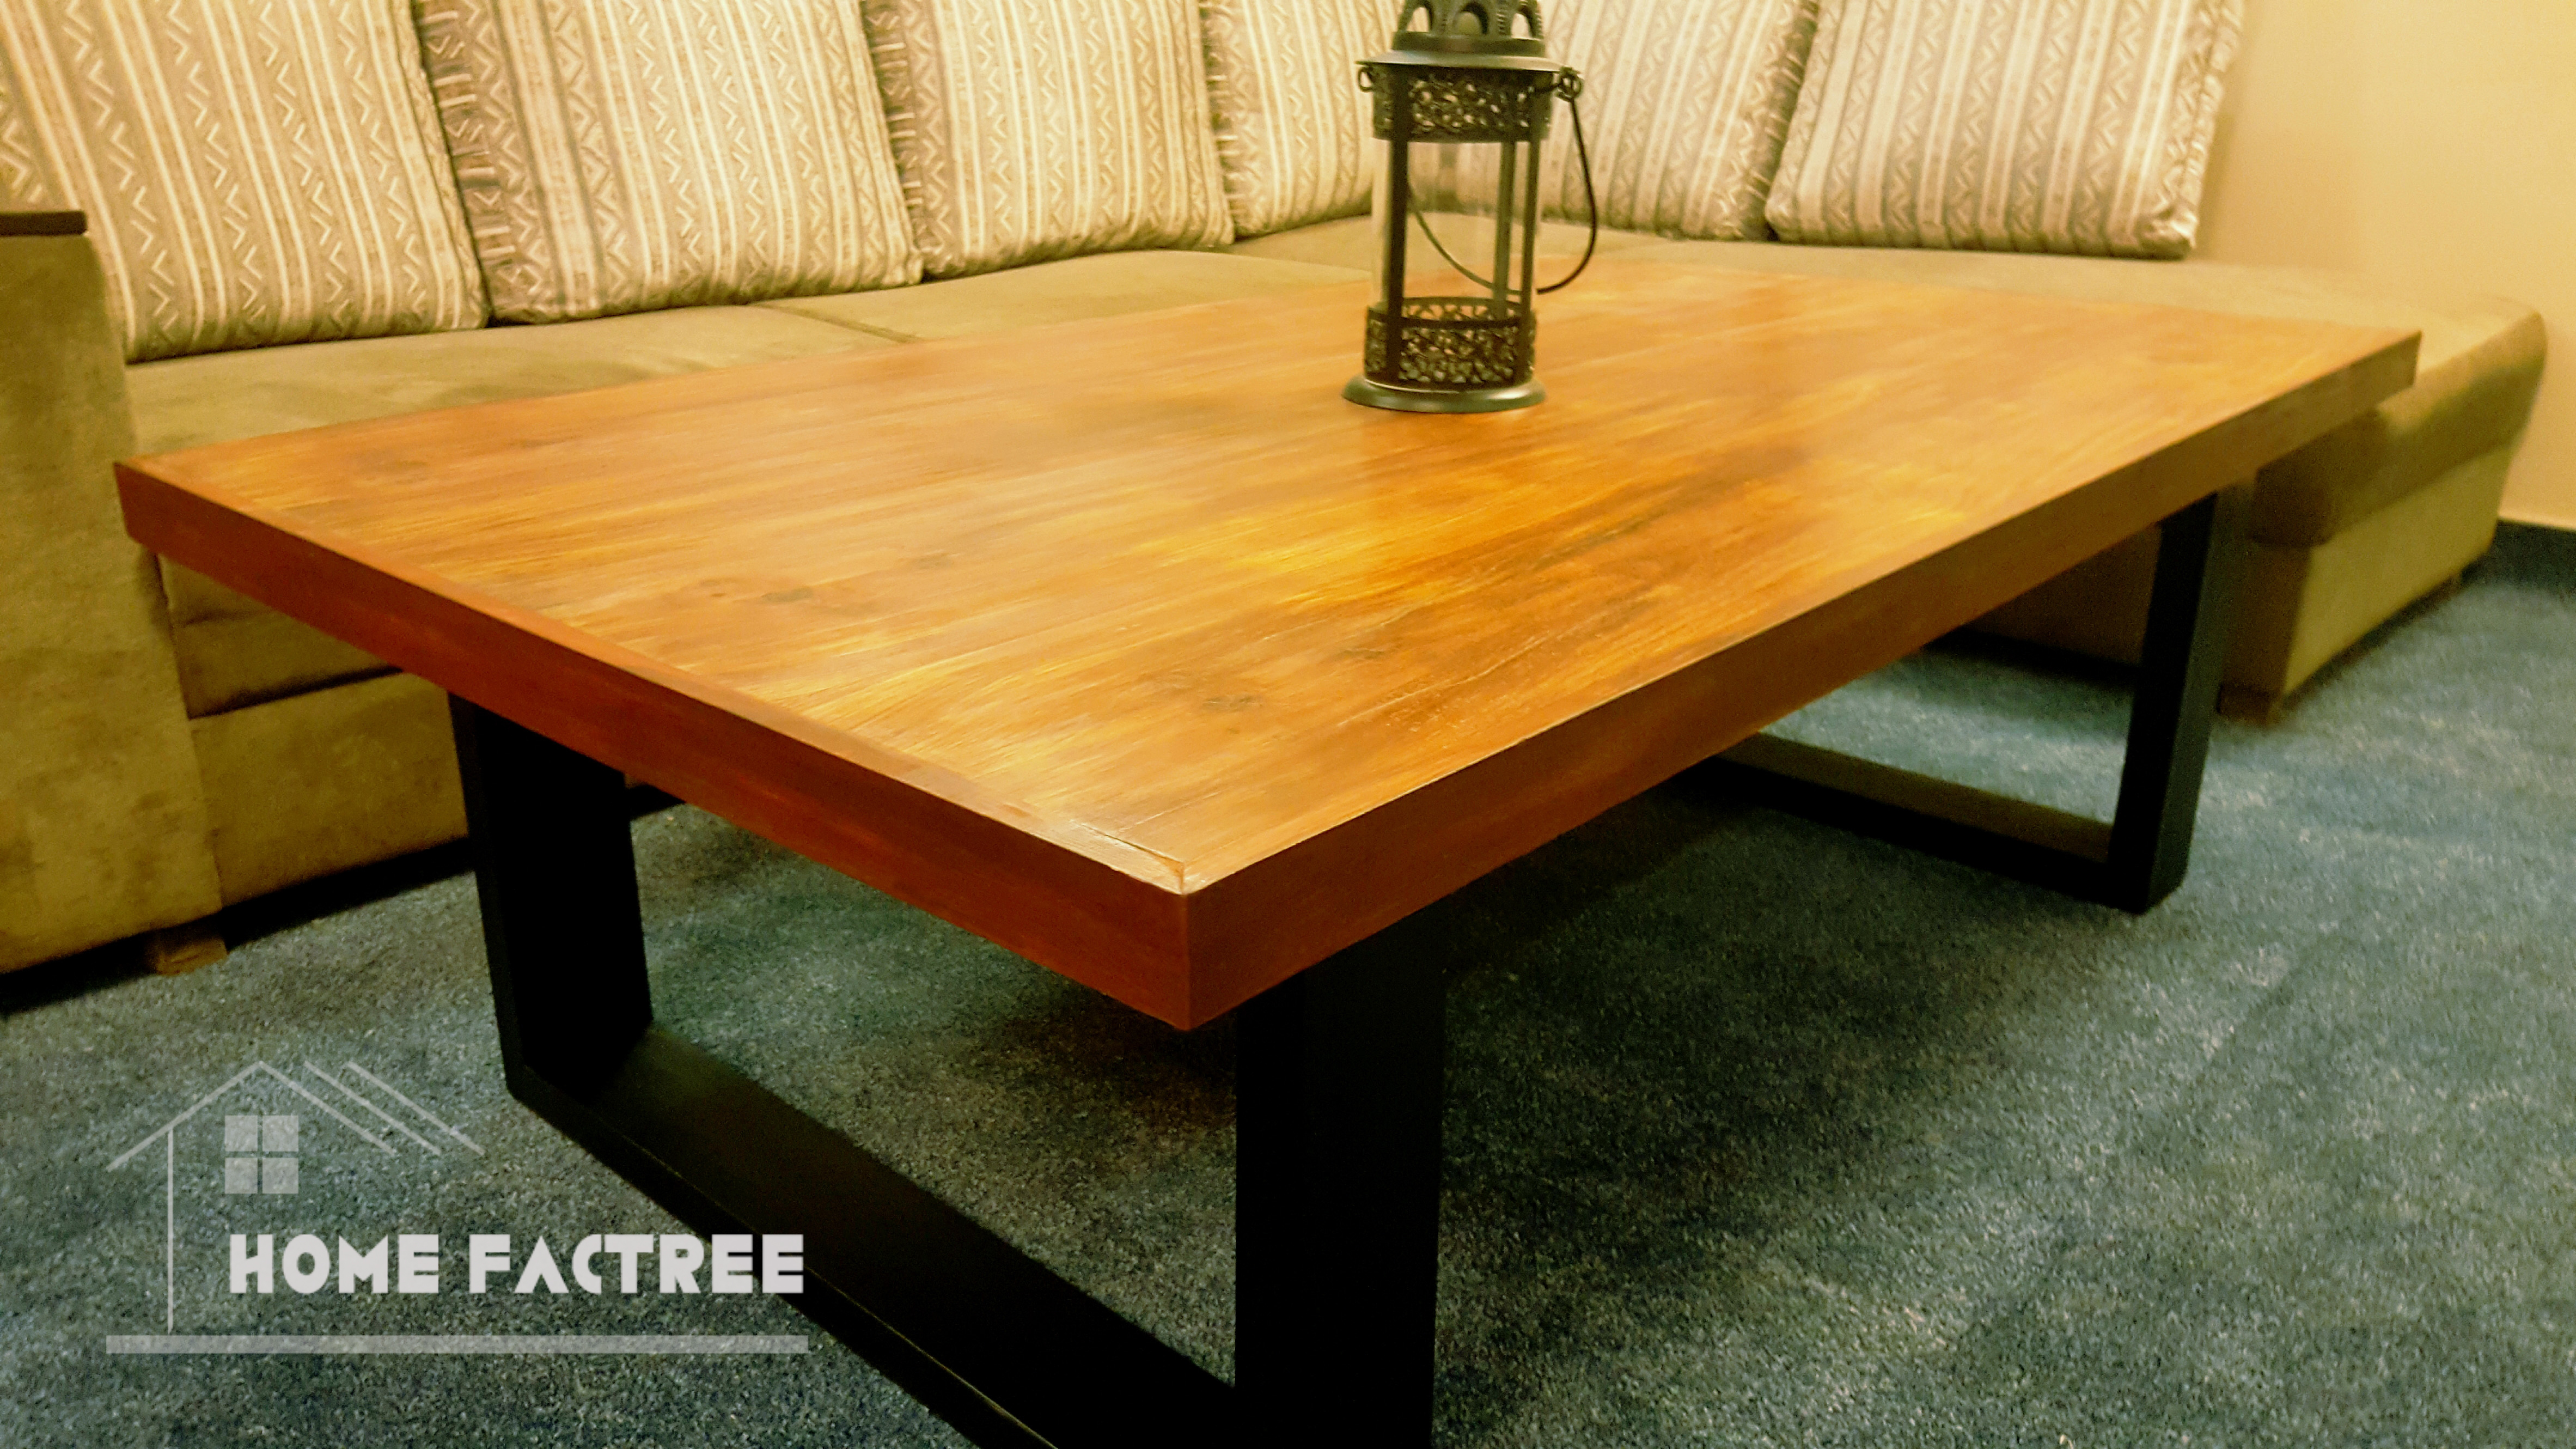 Metal Table With Wood Top Home Factree